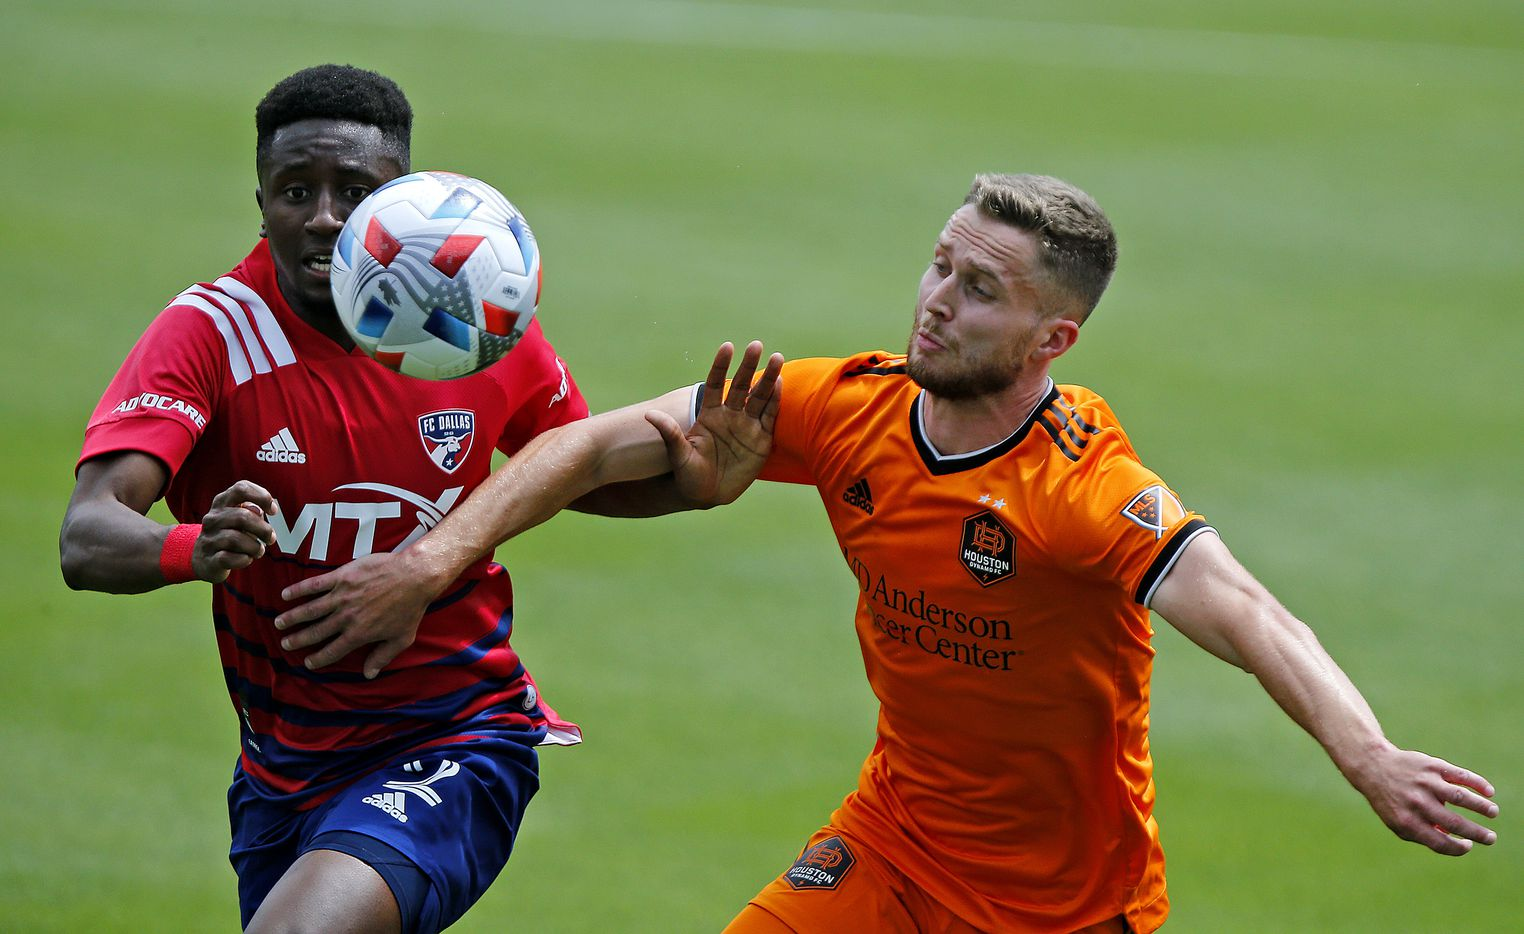 FC Dallas defender Eddie Munjoma (2) and Houston Dynamo defender Adam Lundqvist (3) race to the soccer ball during the first half as FC Dallas hosted the Houston Dynamo at Toyota Stadium in Frisco on May 8, 2021. (Stewart F. House/Special Contributor)